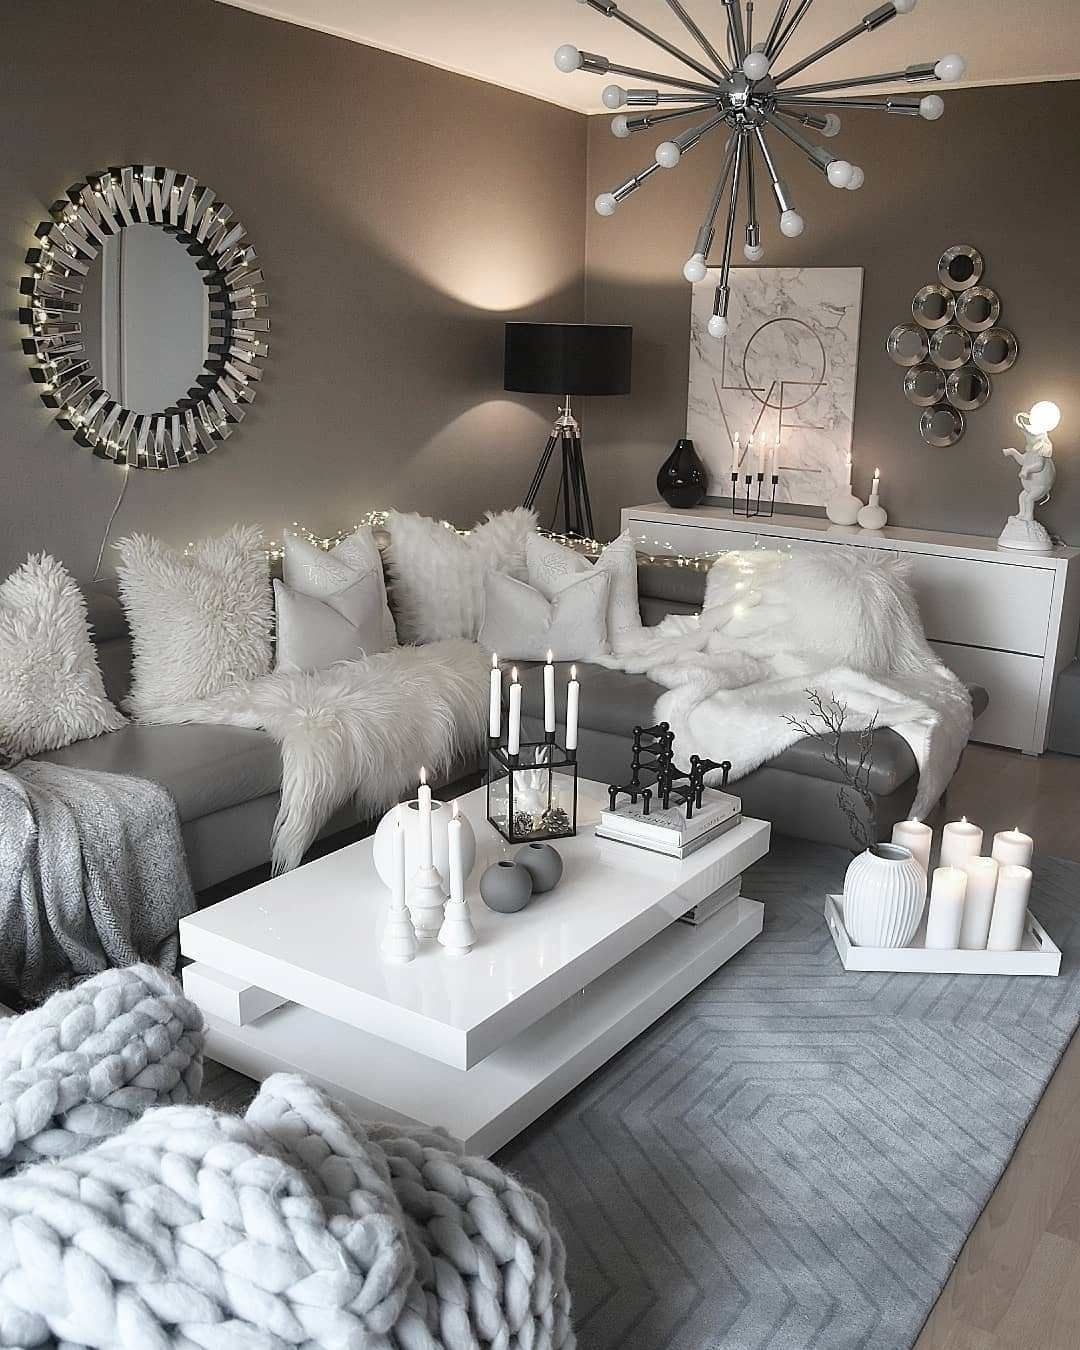 Recreate This White And Grey Cozy Living Room Decor Livingroom Decor Living Room Decor Apartment Contemporary Decor Living Room Living Room Decor Cozy